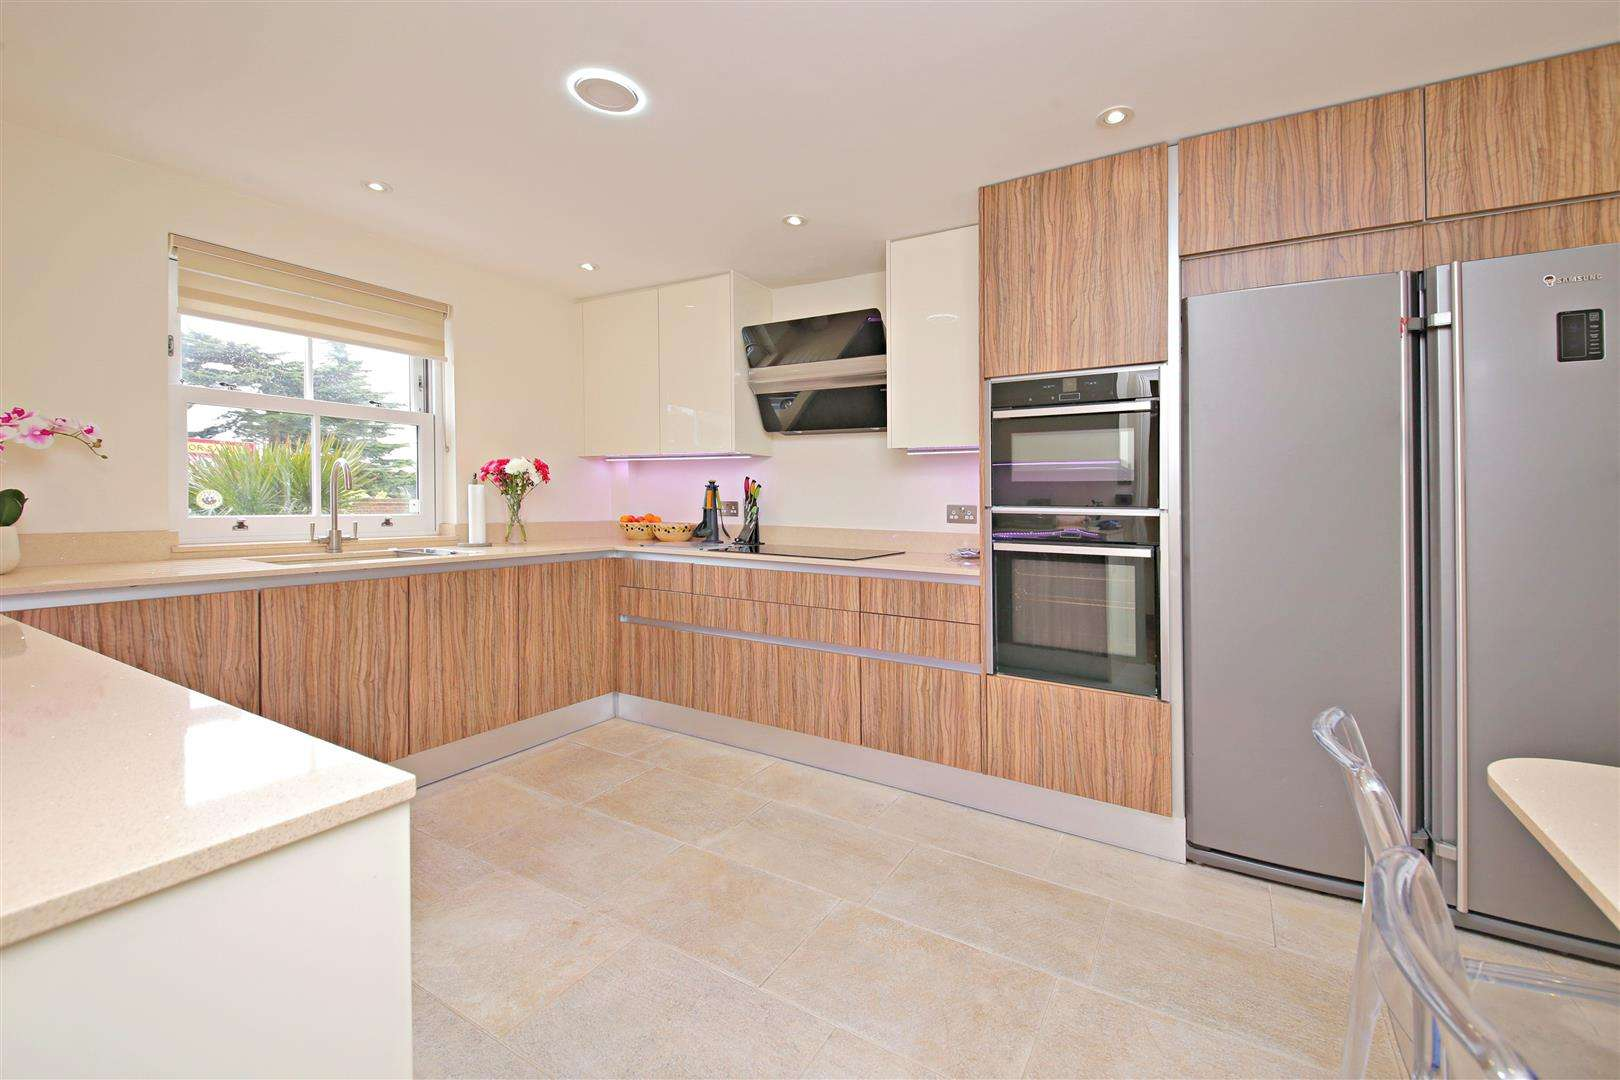 4 bed to rent in Shenley - Property Image 1